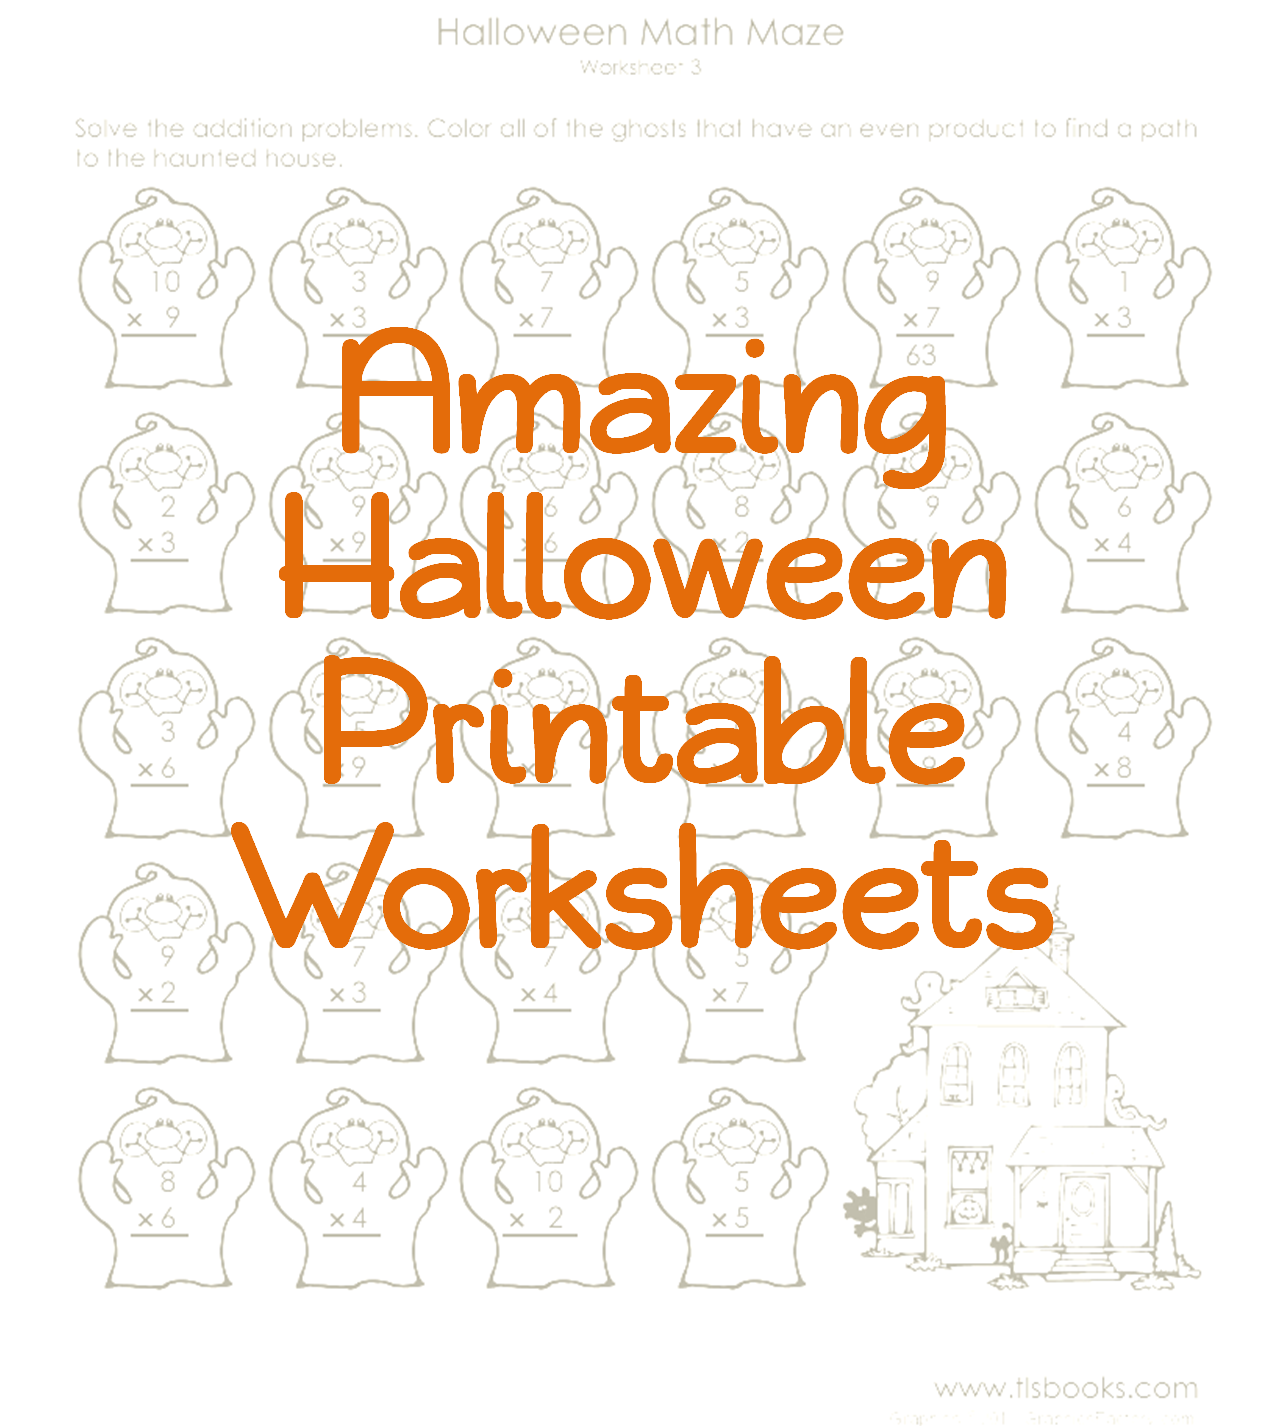 Halloween Printable Worksheets Add A Little Learning In